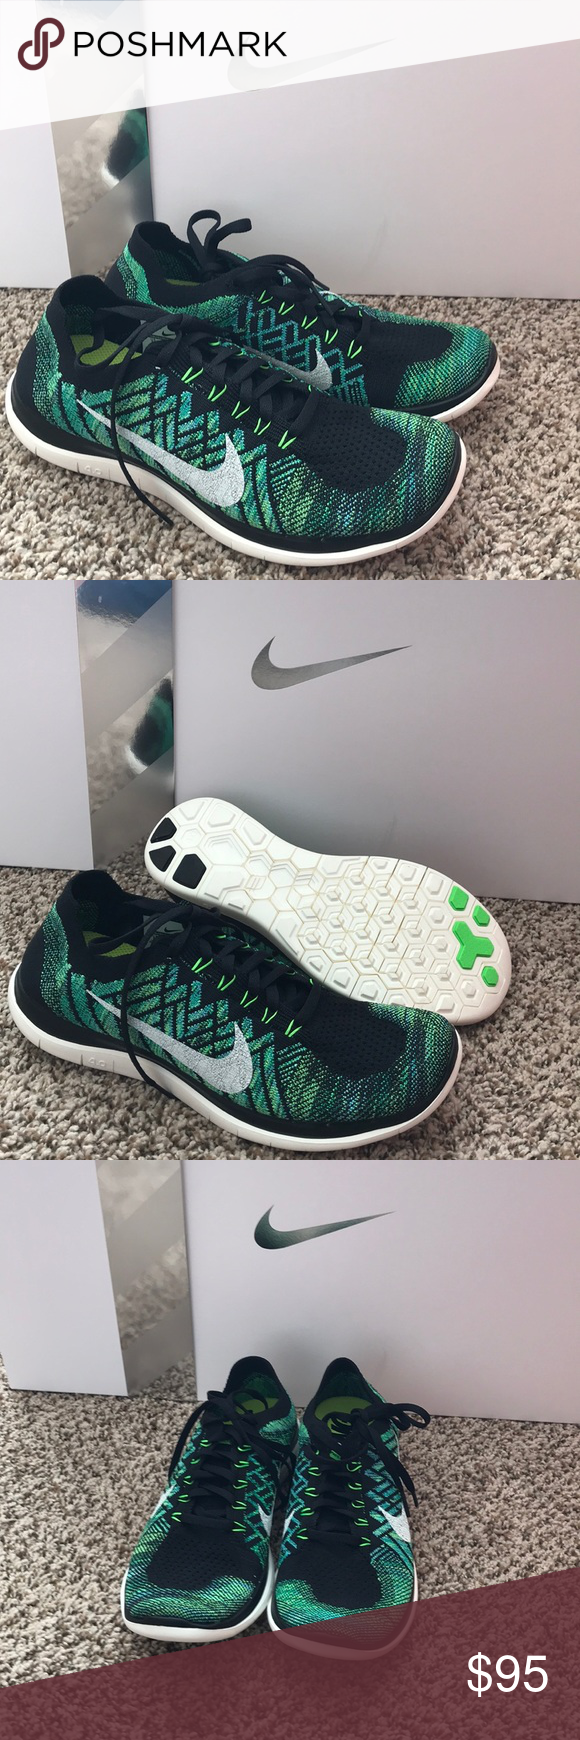 Nike free run 4.0 flyknit. Nike free run 4.0 flyknit Brand new Nike Shoes  Athletic Shoes